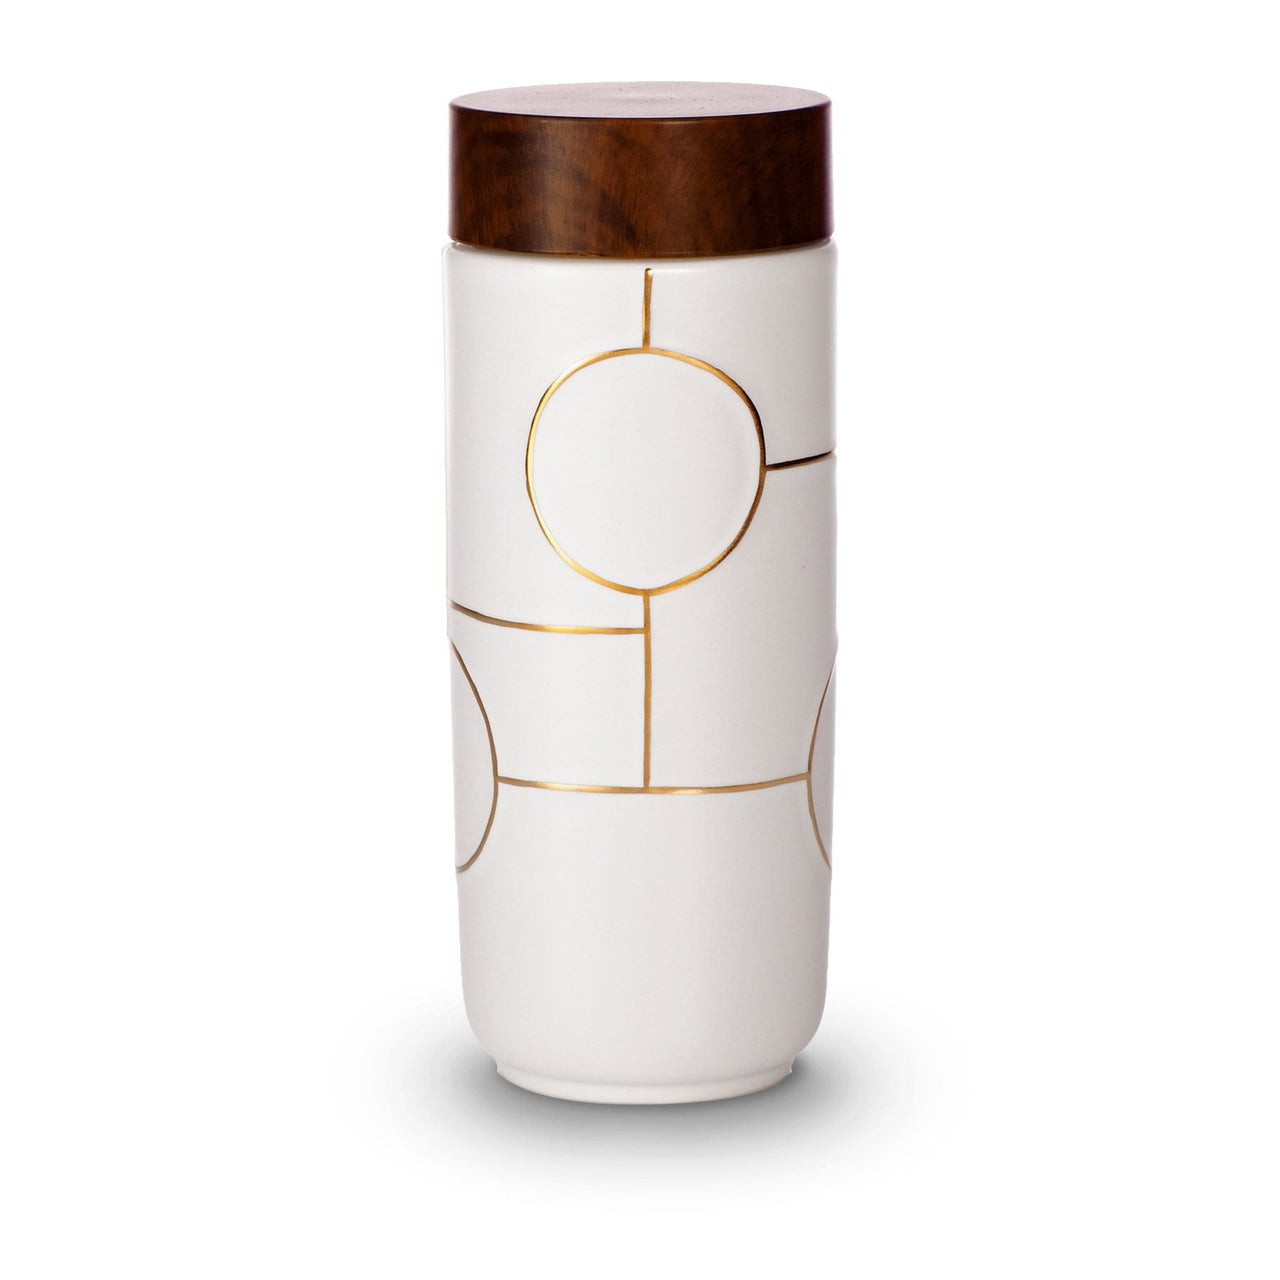 Acera Liven Flasks & Water Bottles White + Golden Line (Hand Painted) The Dream Ceramic Tumbler